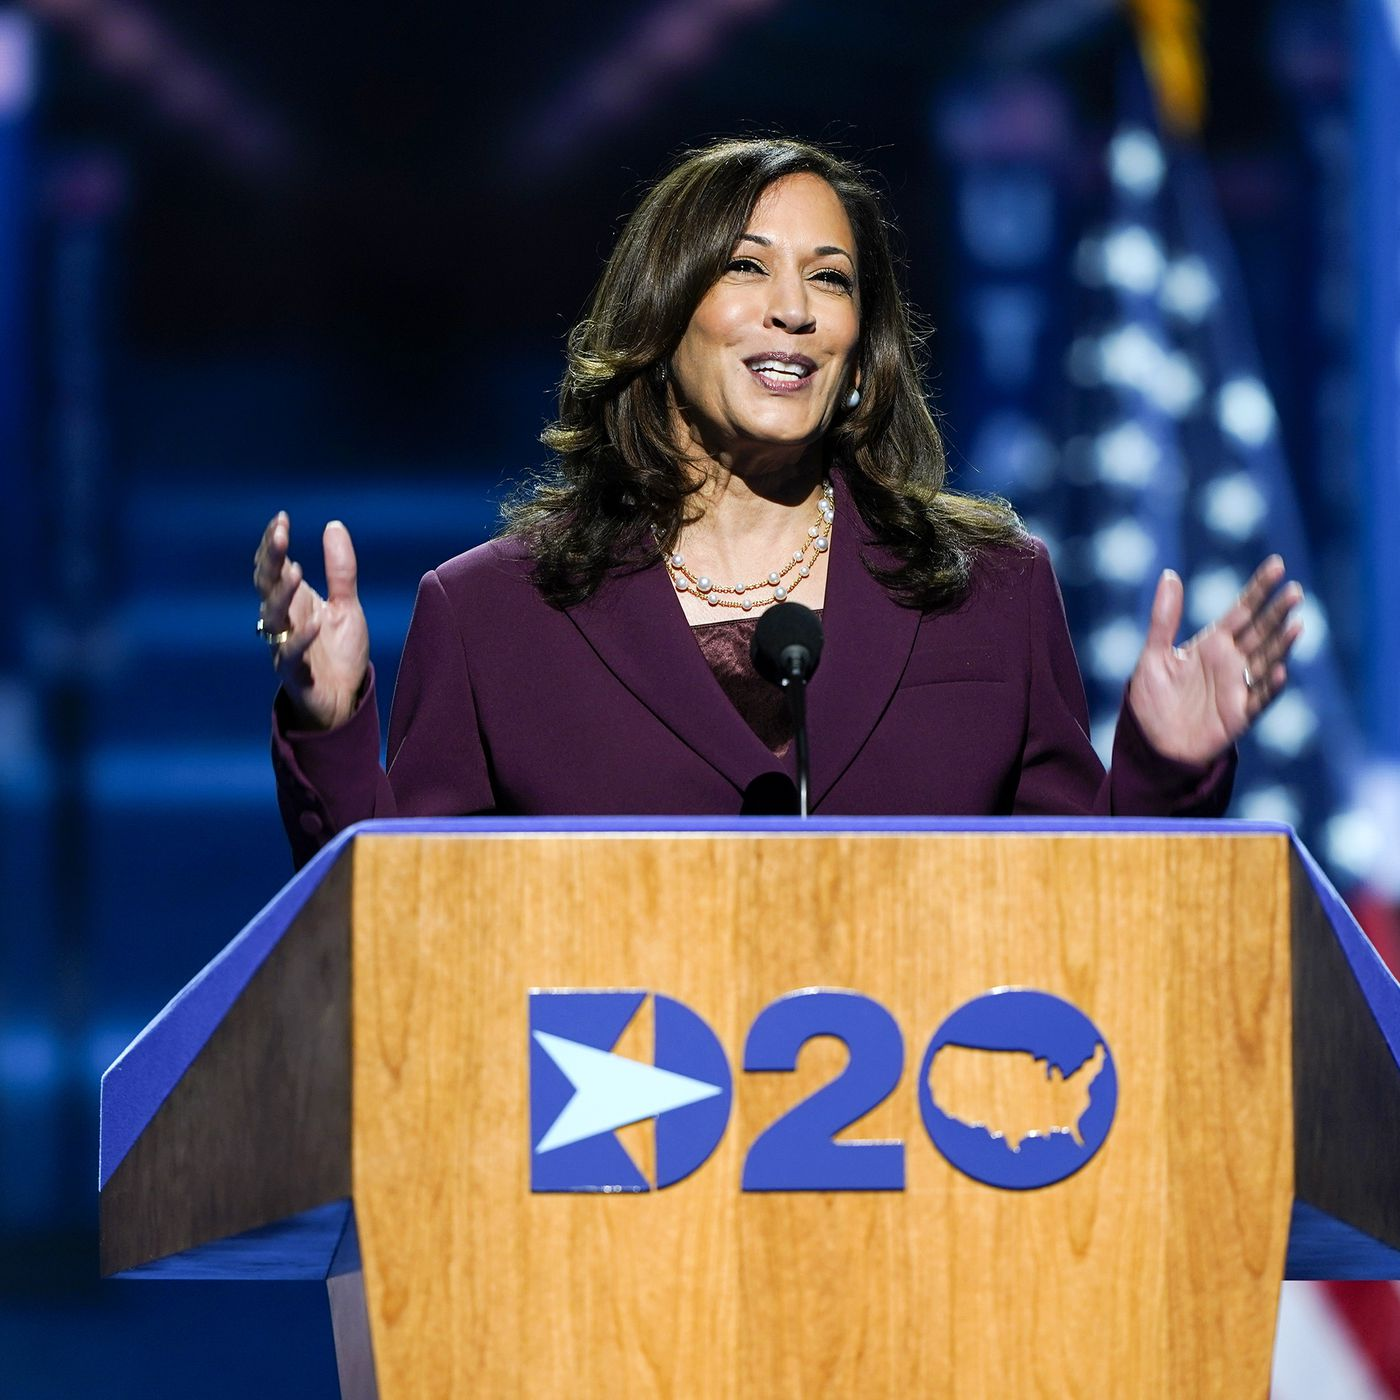 Kamala Harris Makes History As The First Black And South Asian American Woman And Hbcu Graduate To Accept The Democratic Vp Nomination Vox